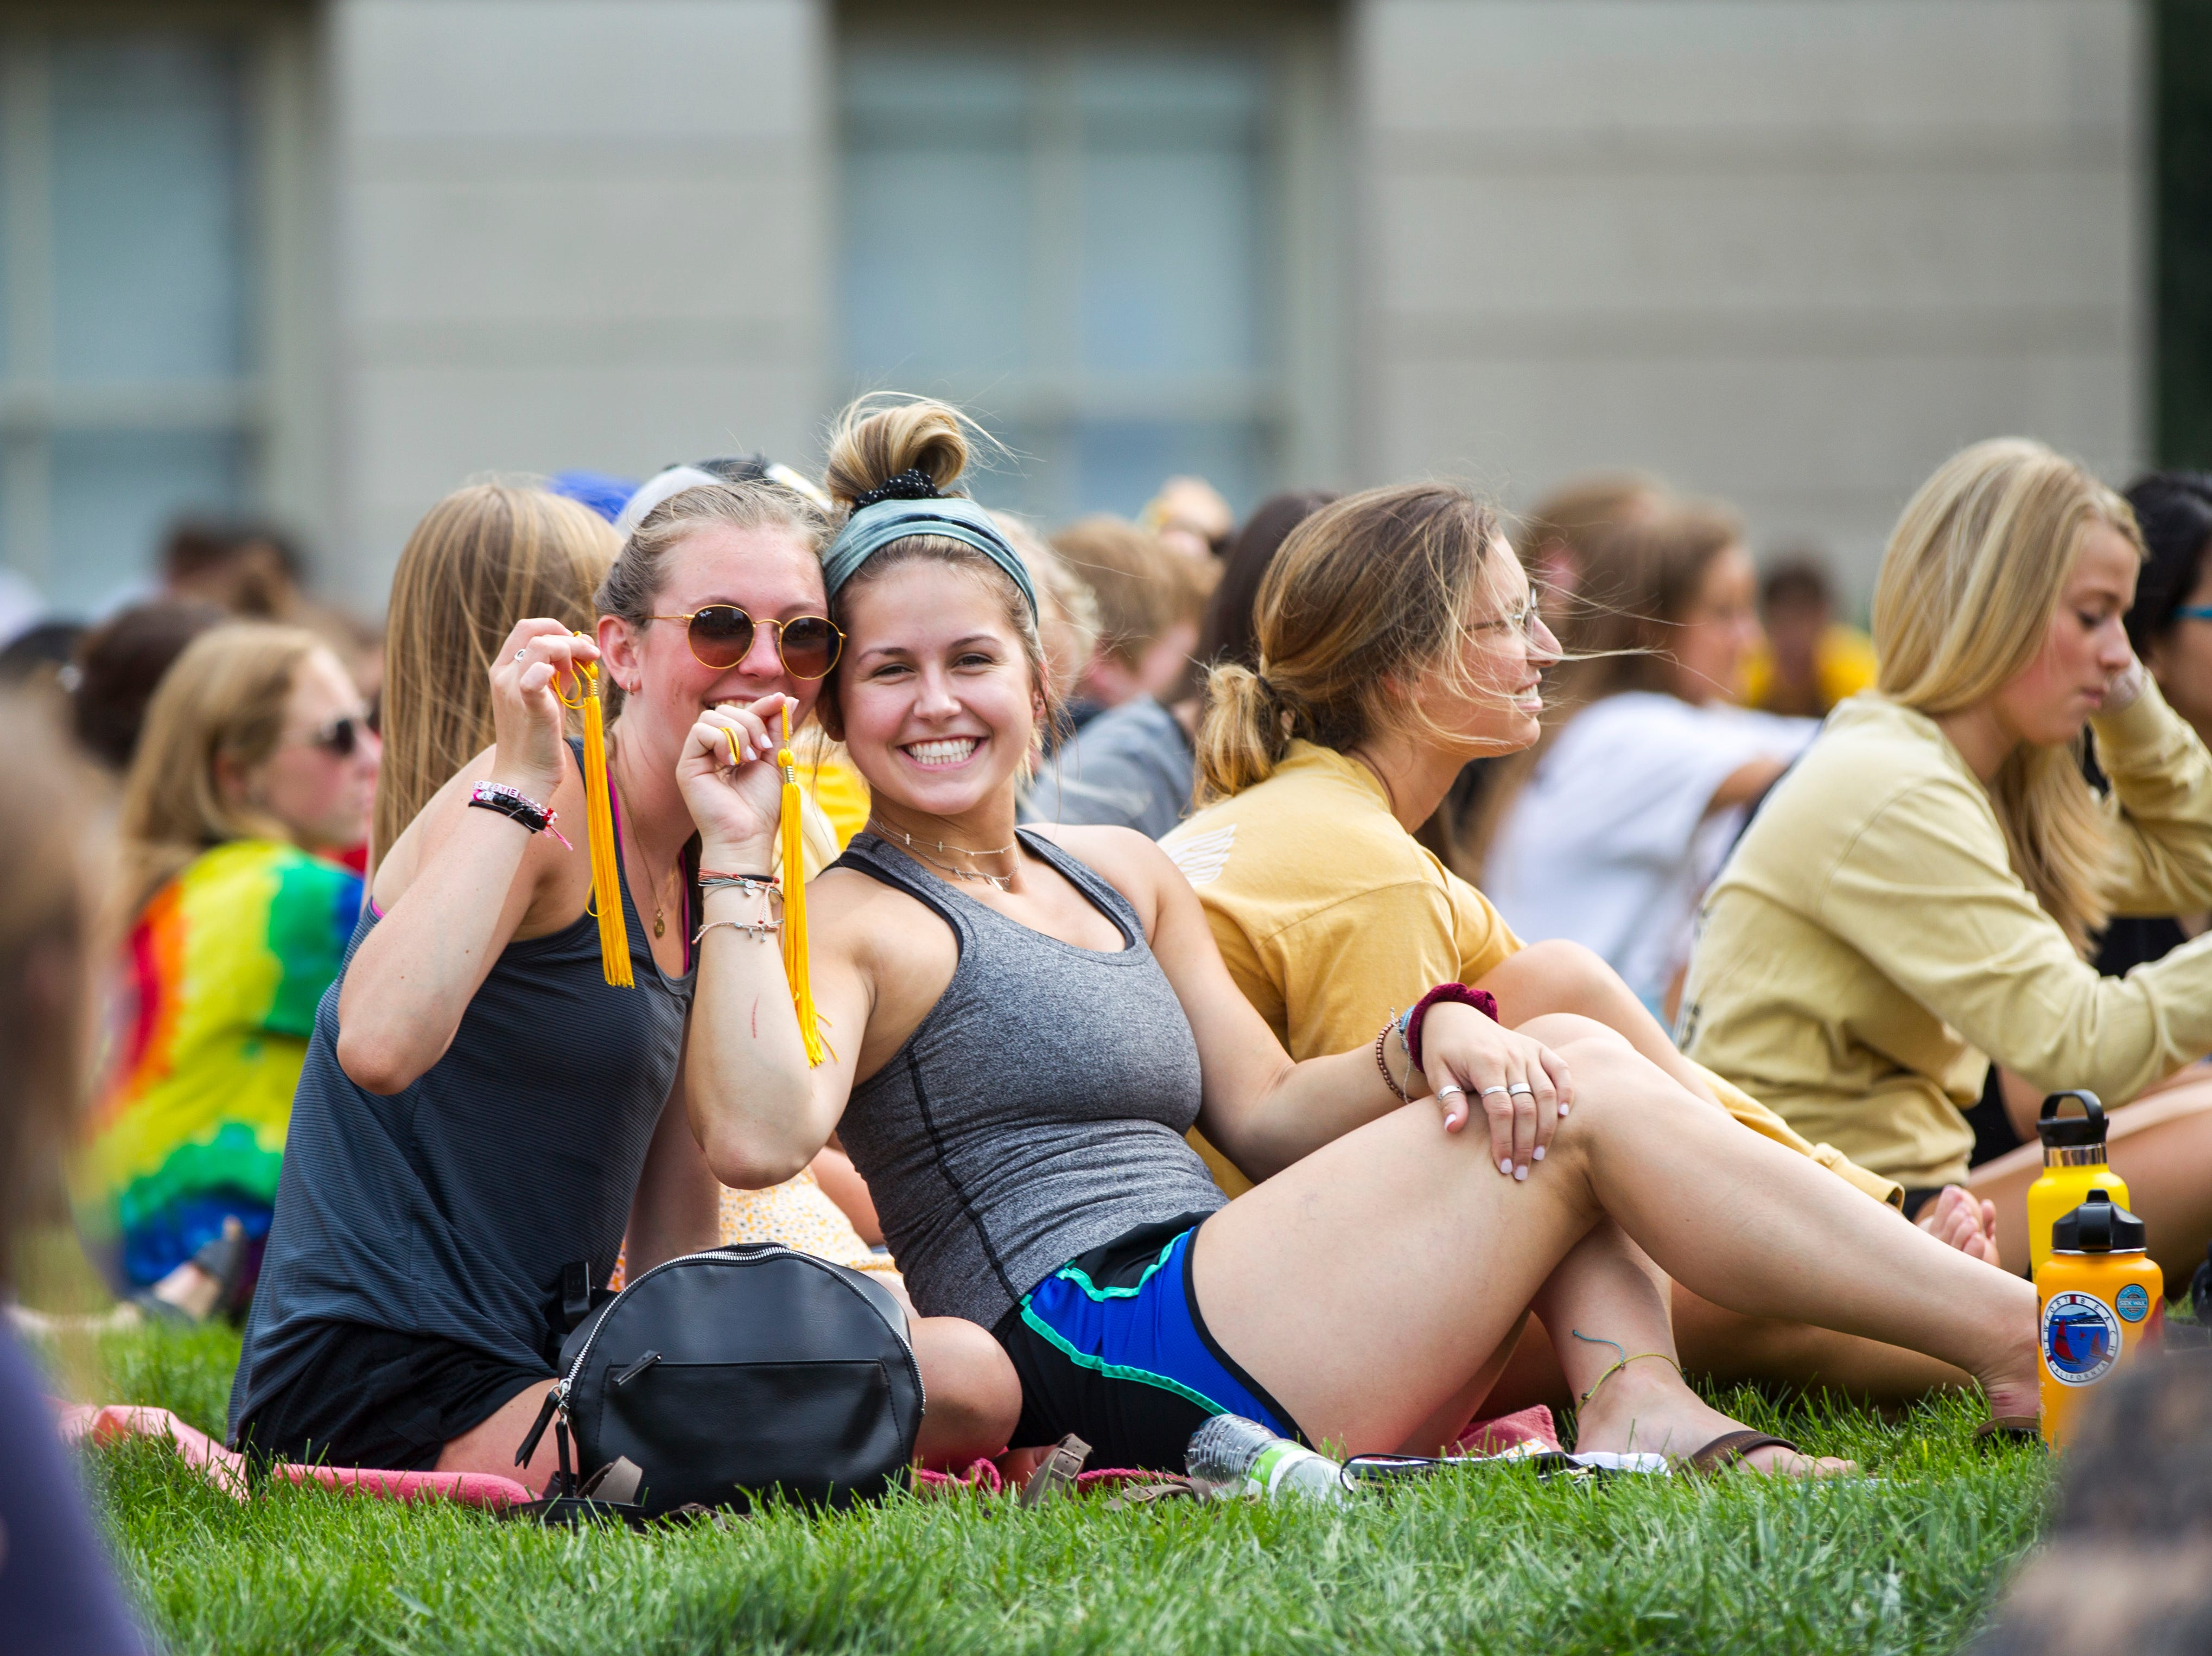 Students hold up tassels during the University of Iowa class of 2022 convocation on Sunday, Aug. 19, 2018, at the Pentacrest in Iowa City.